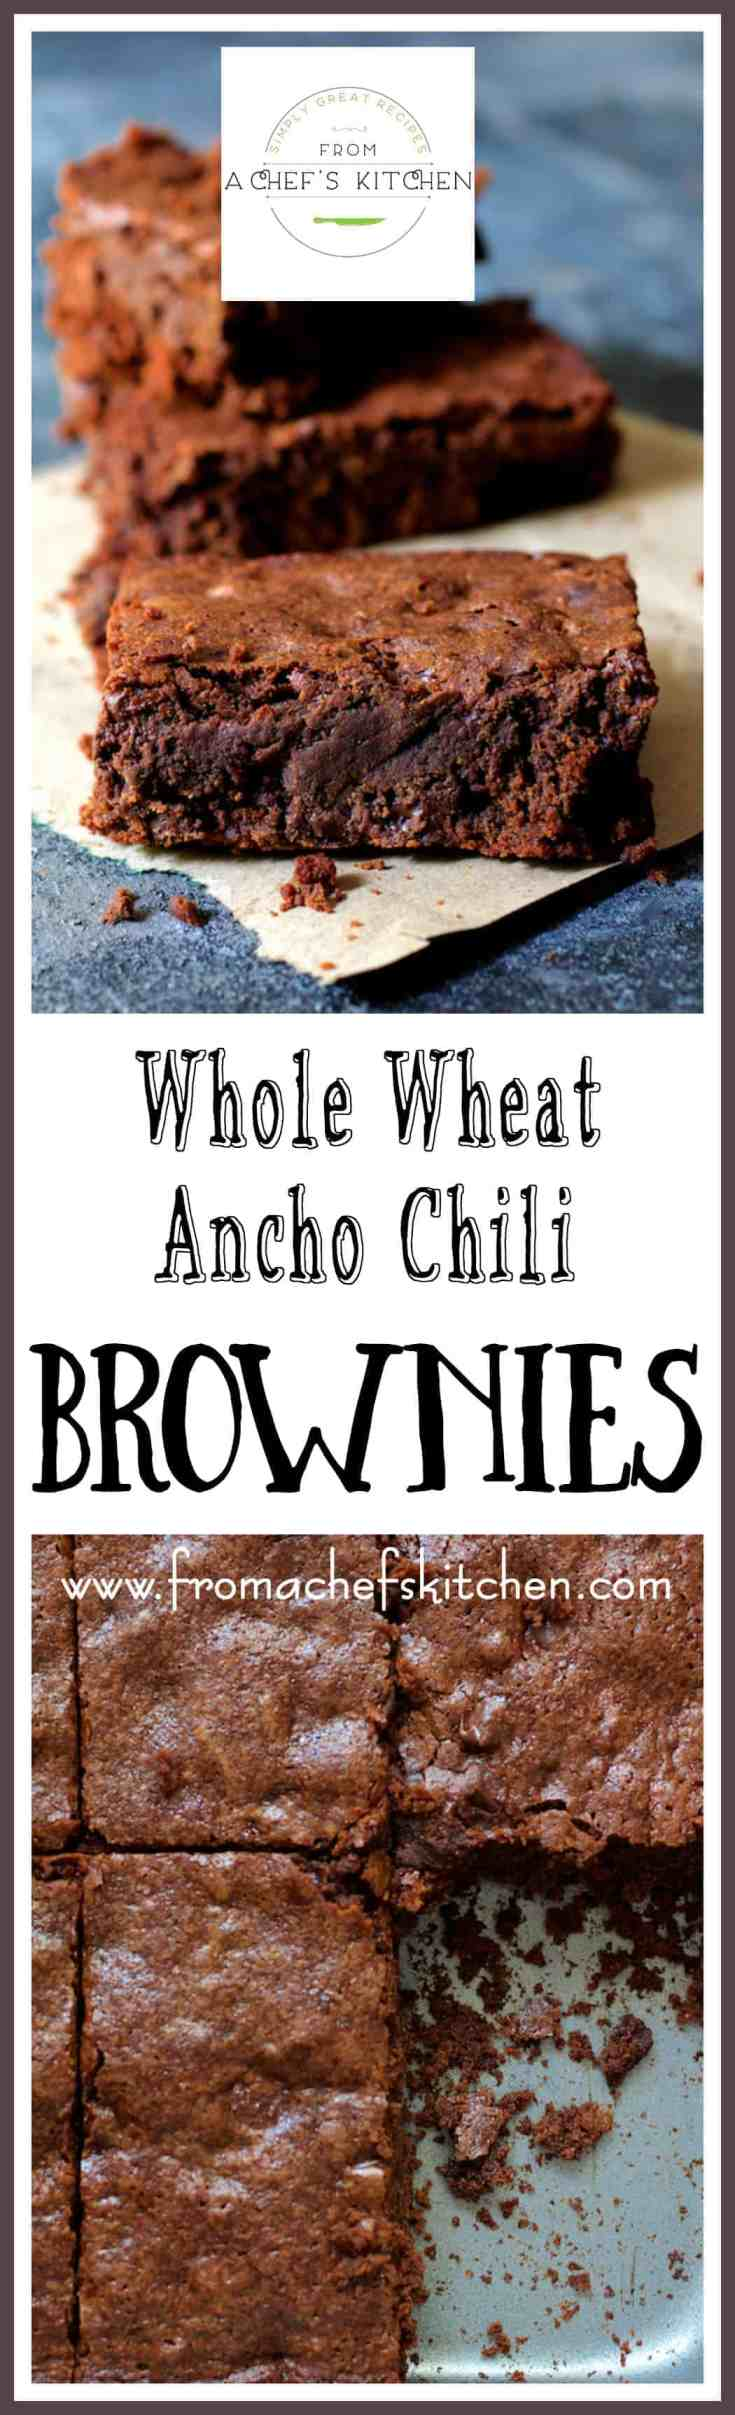 Whole Wheat Ancho Chili Brownies are intensely chocolatey but also pack a little heat with a touch of smokiness for a seriously delicious combination! #OrganicMoments #paidad #sponsored #ad